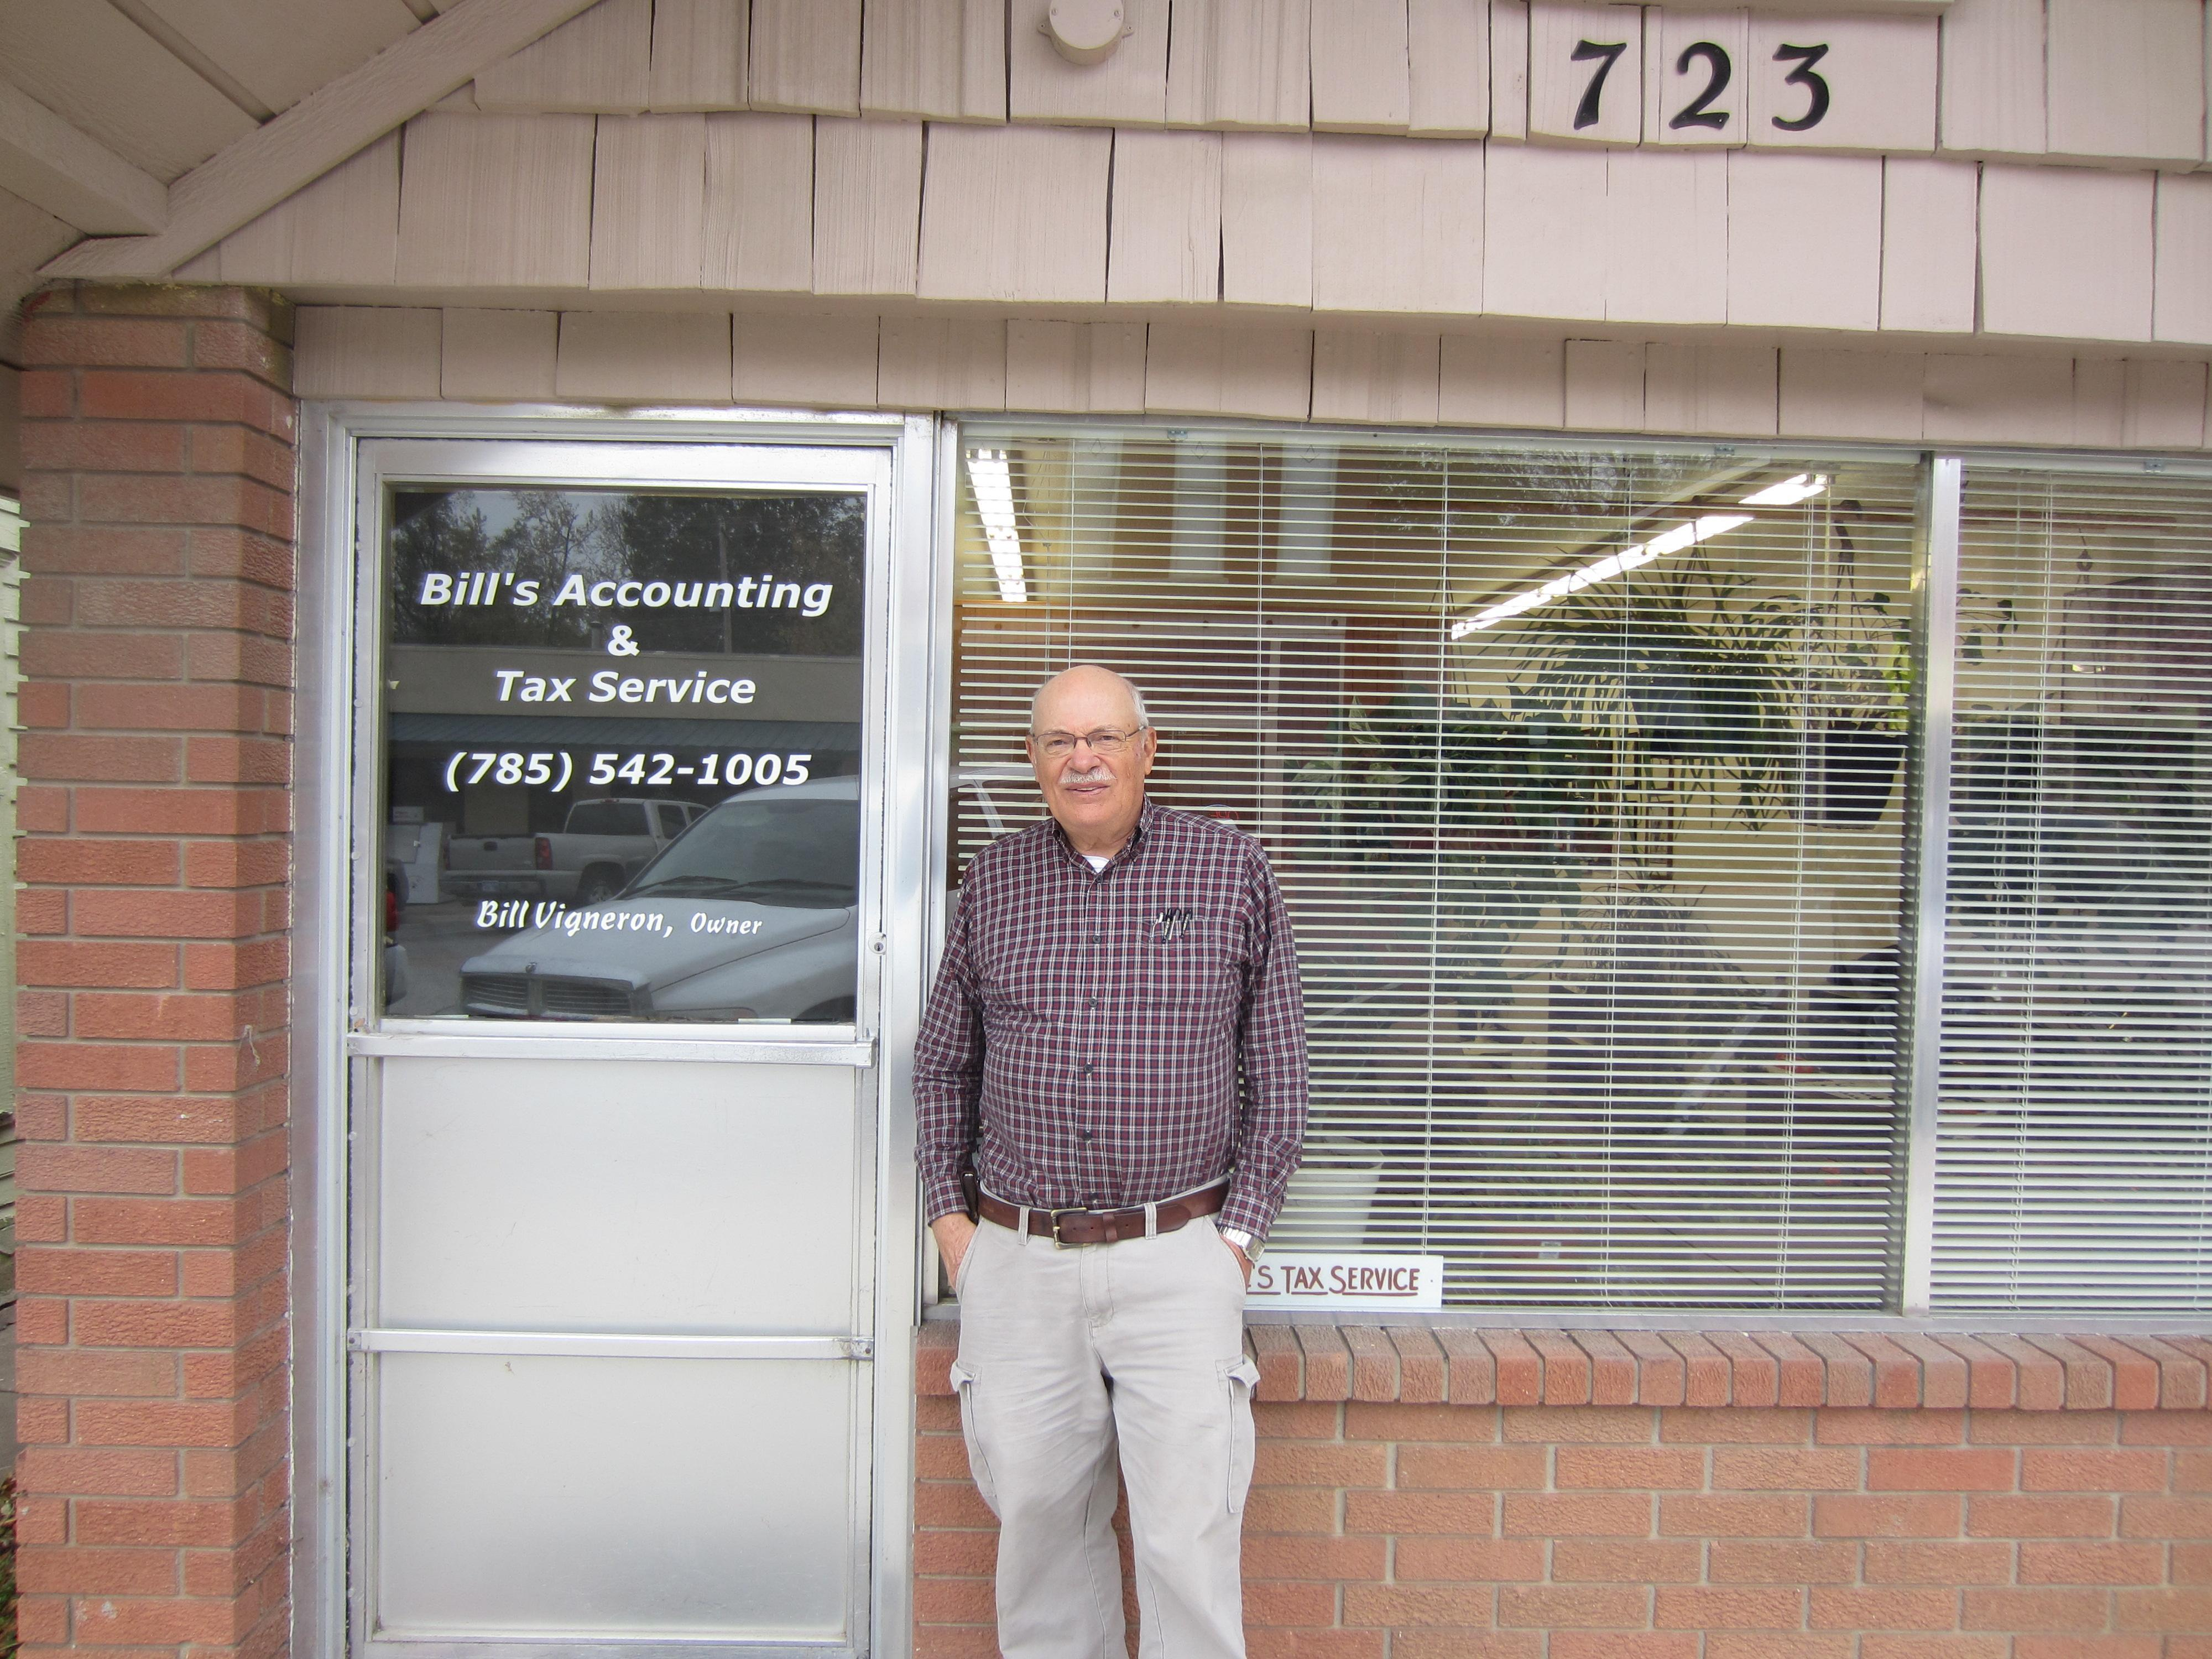 Bill's Accounting & Tax Services